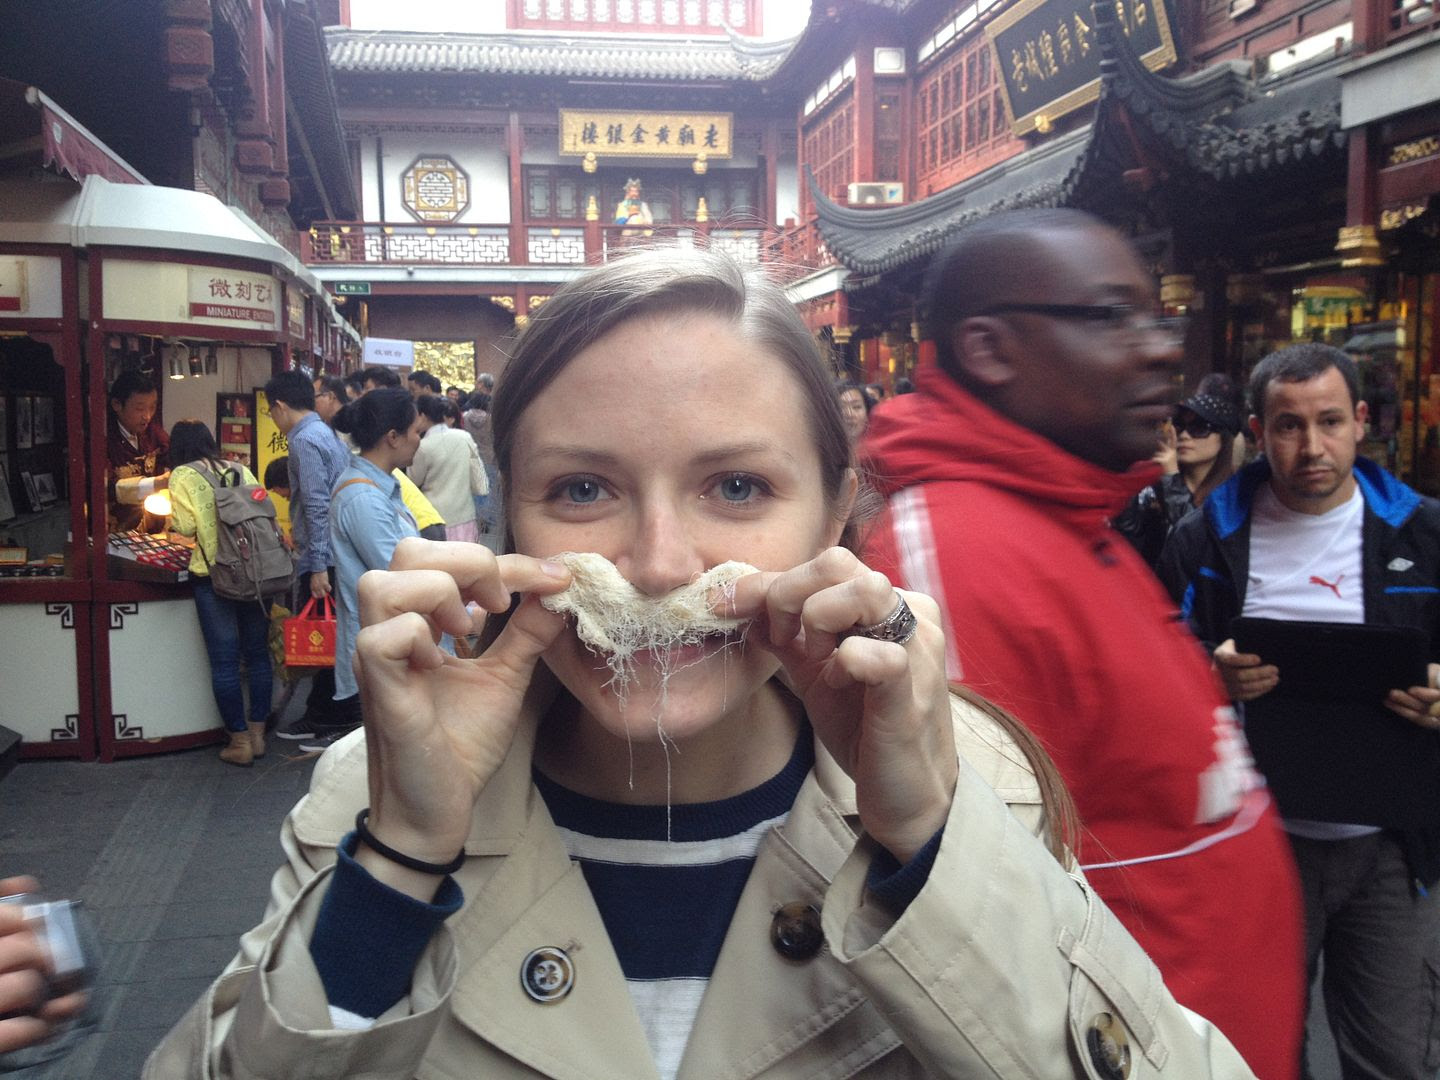 Trying Dragon Mustache in Shanghai in October--City God Temple/Yu Garden photo 2013-10-27155756_zps96ef9012.jpg